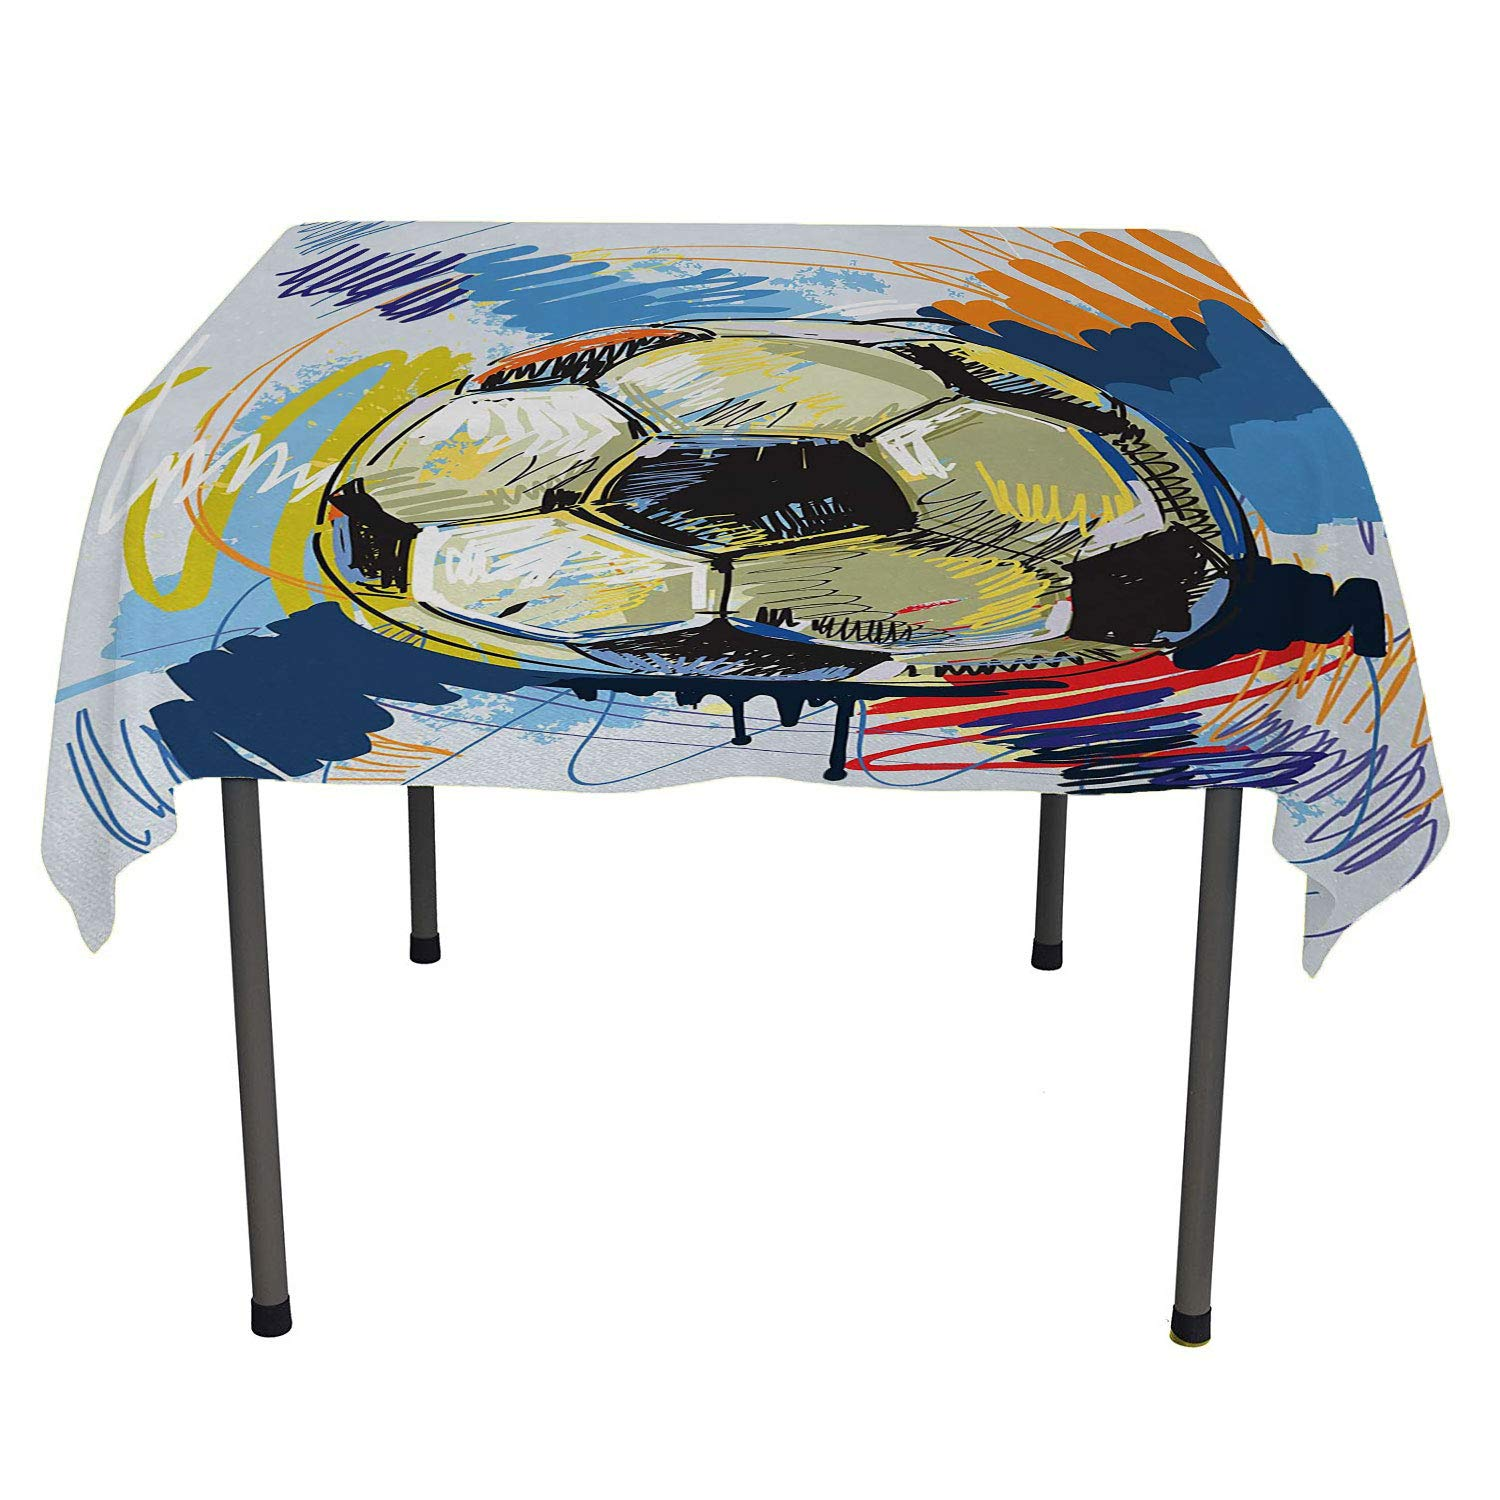 color03 60  W By 90  L All of better Soccer Outdoor Picnics Soccer Design Elements with Four Player Different Field Positions League Men Modern Multicolor Table coth Waterproof Spring Summer Party Picnic 60 by 84